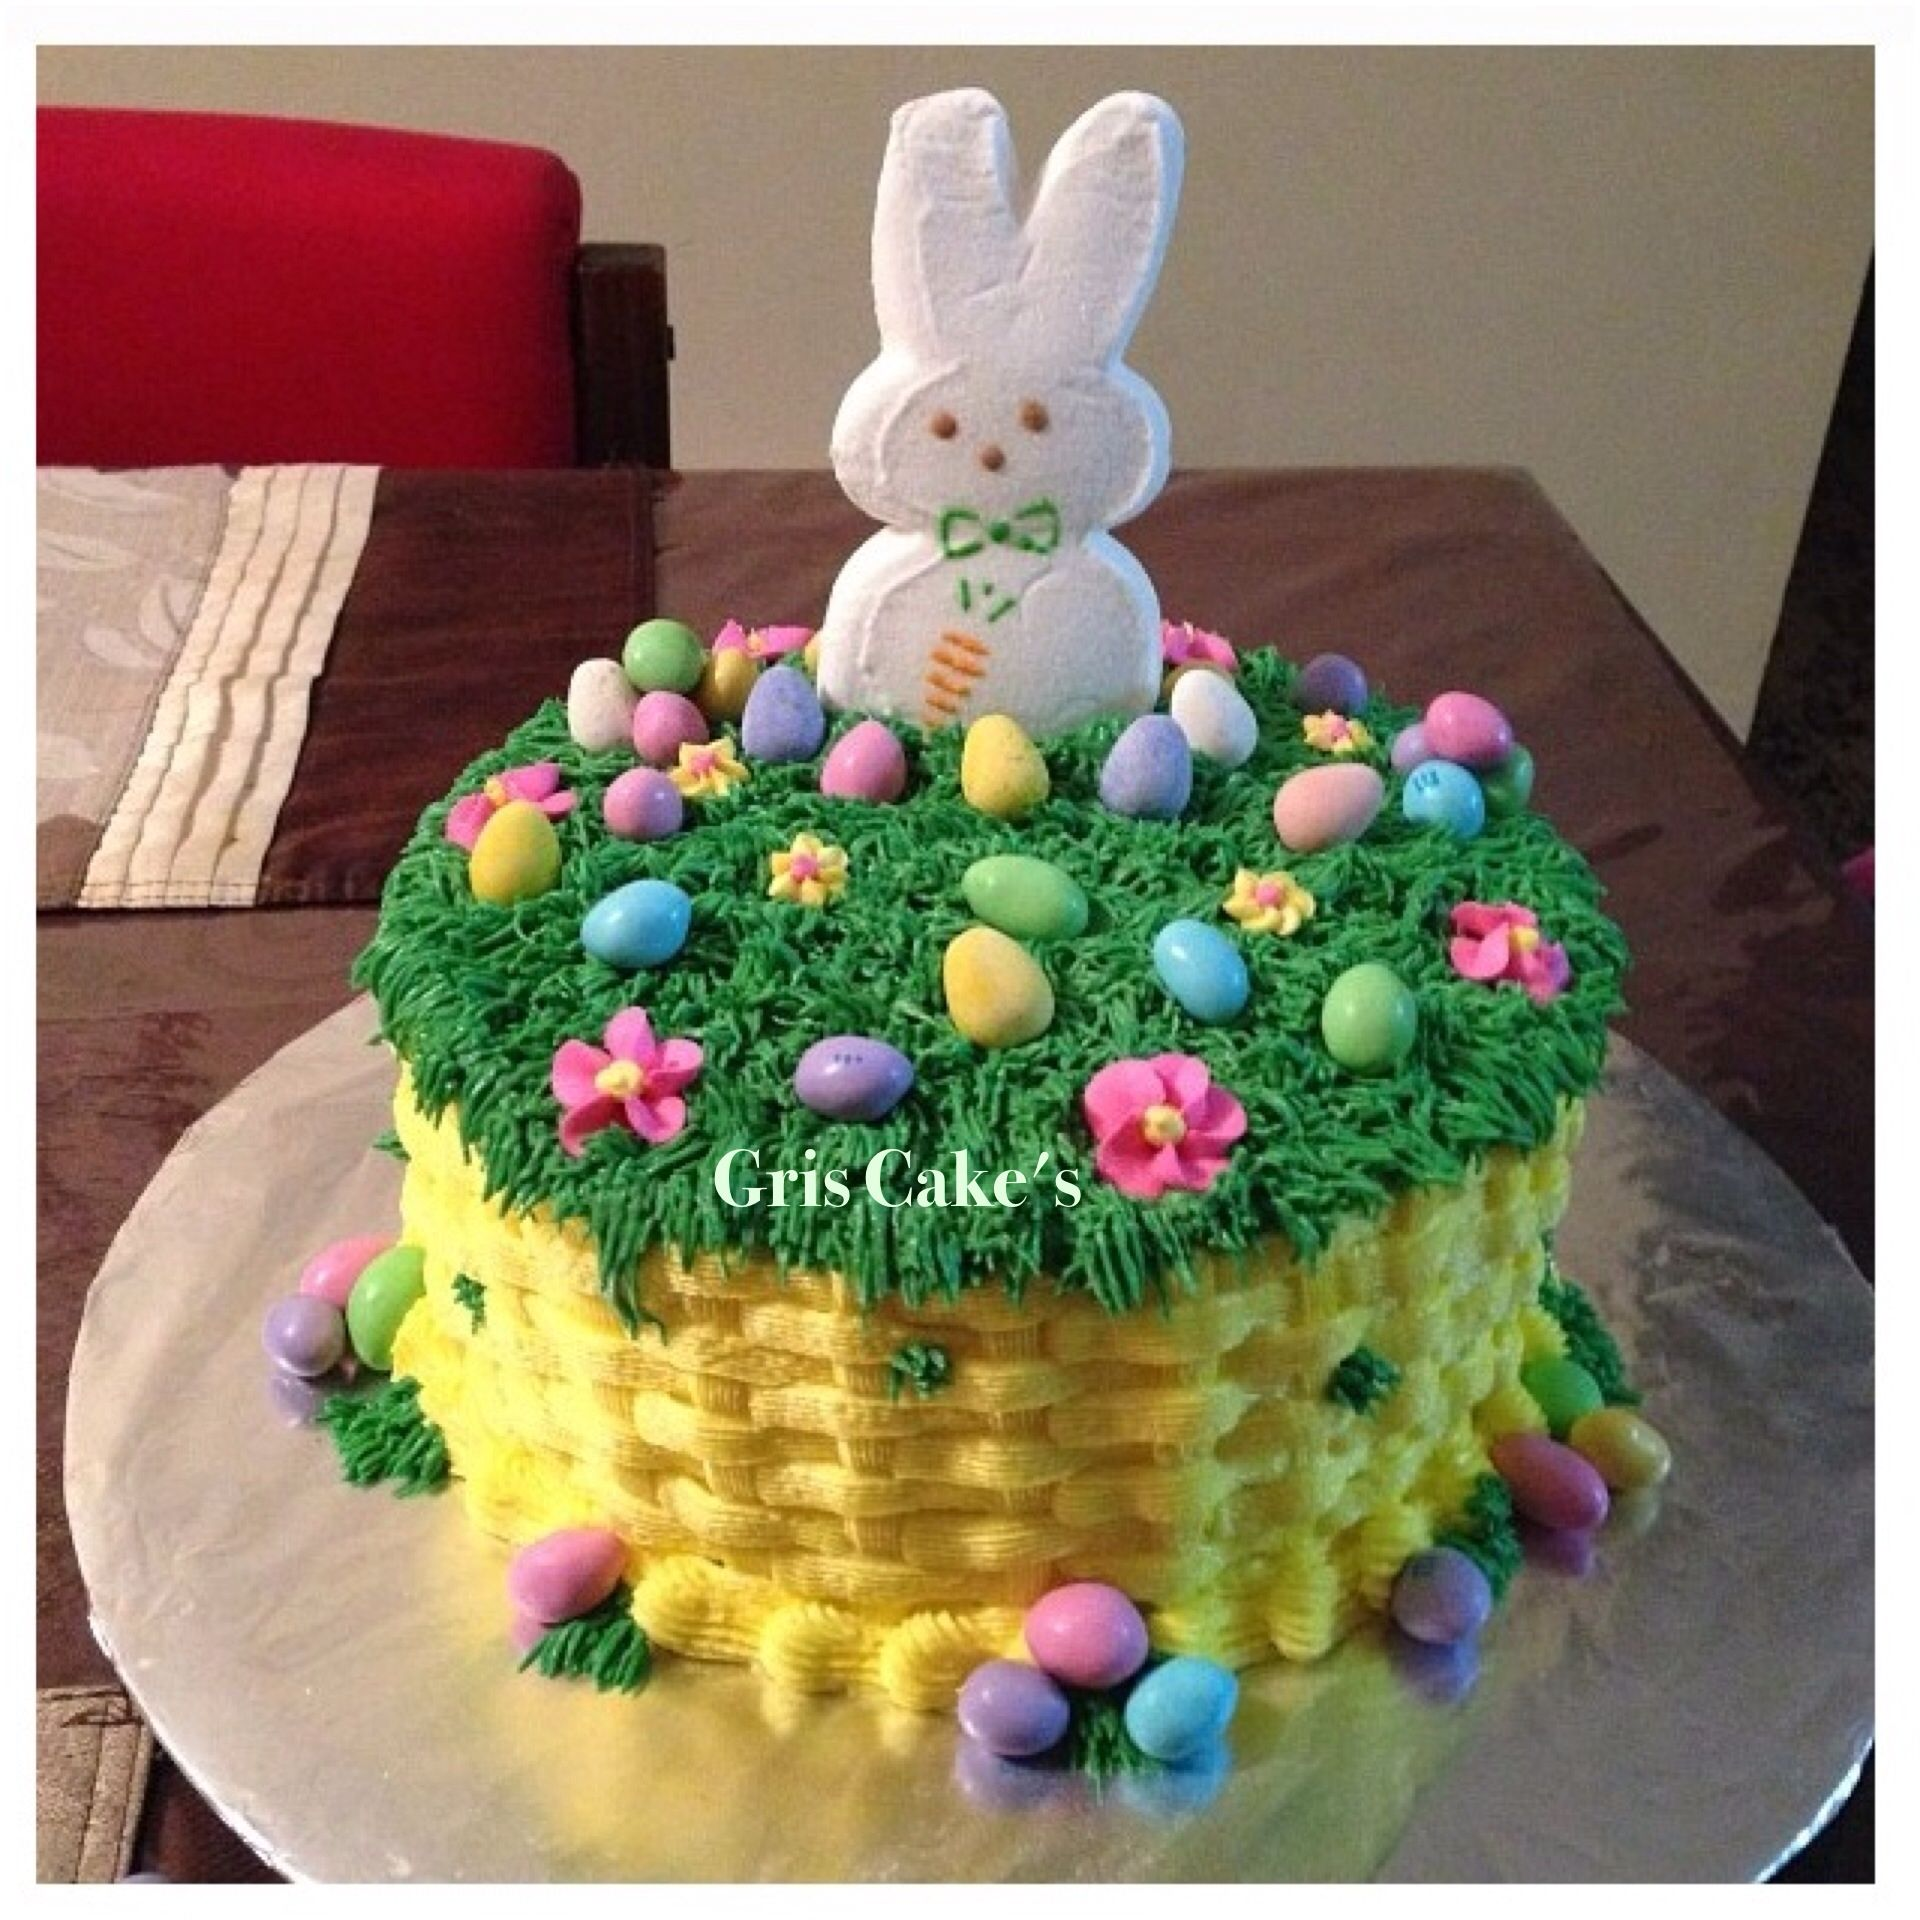 My First Easter Basket Cake Strawberry Flavor I Love It Easter Basket Cake Easter Cake Decorating Easter Cakes